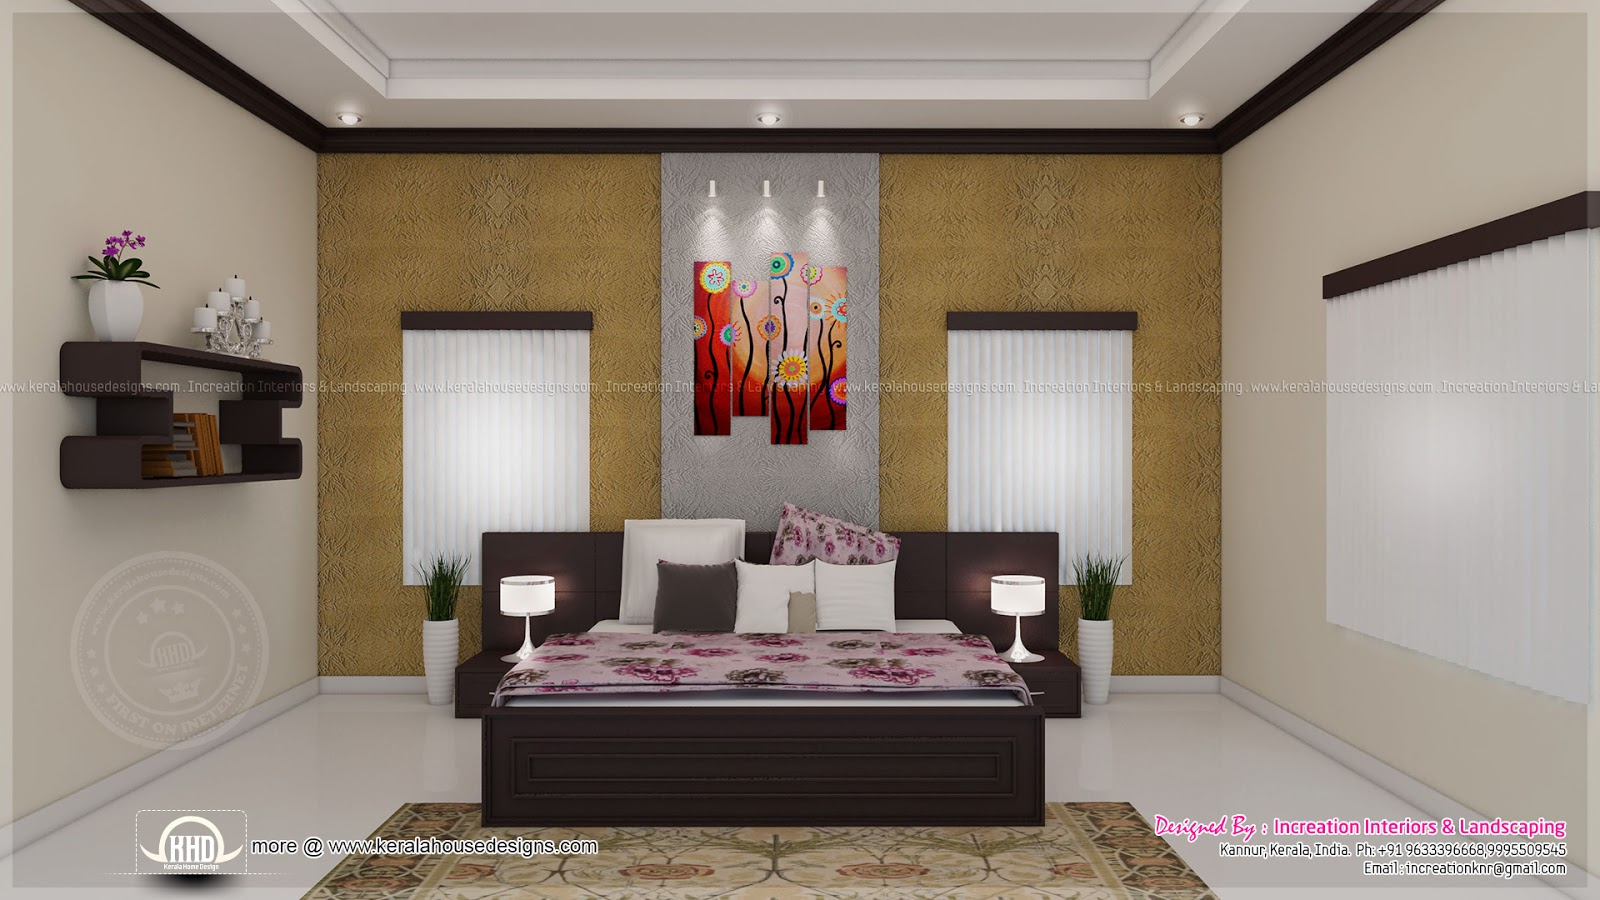 House interior ideas in 3d rendering kerala home design - House interior design ideas pictures ...